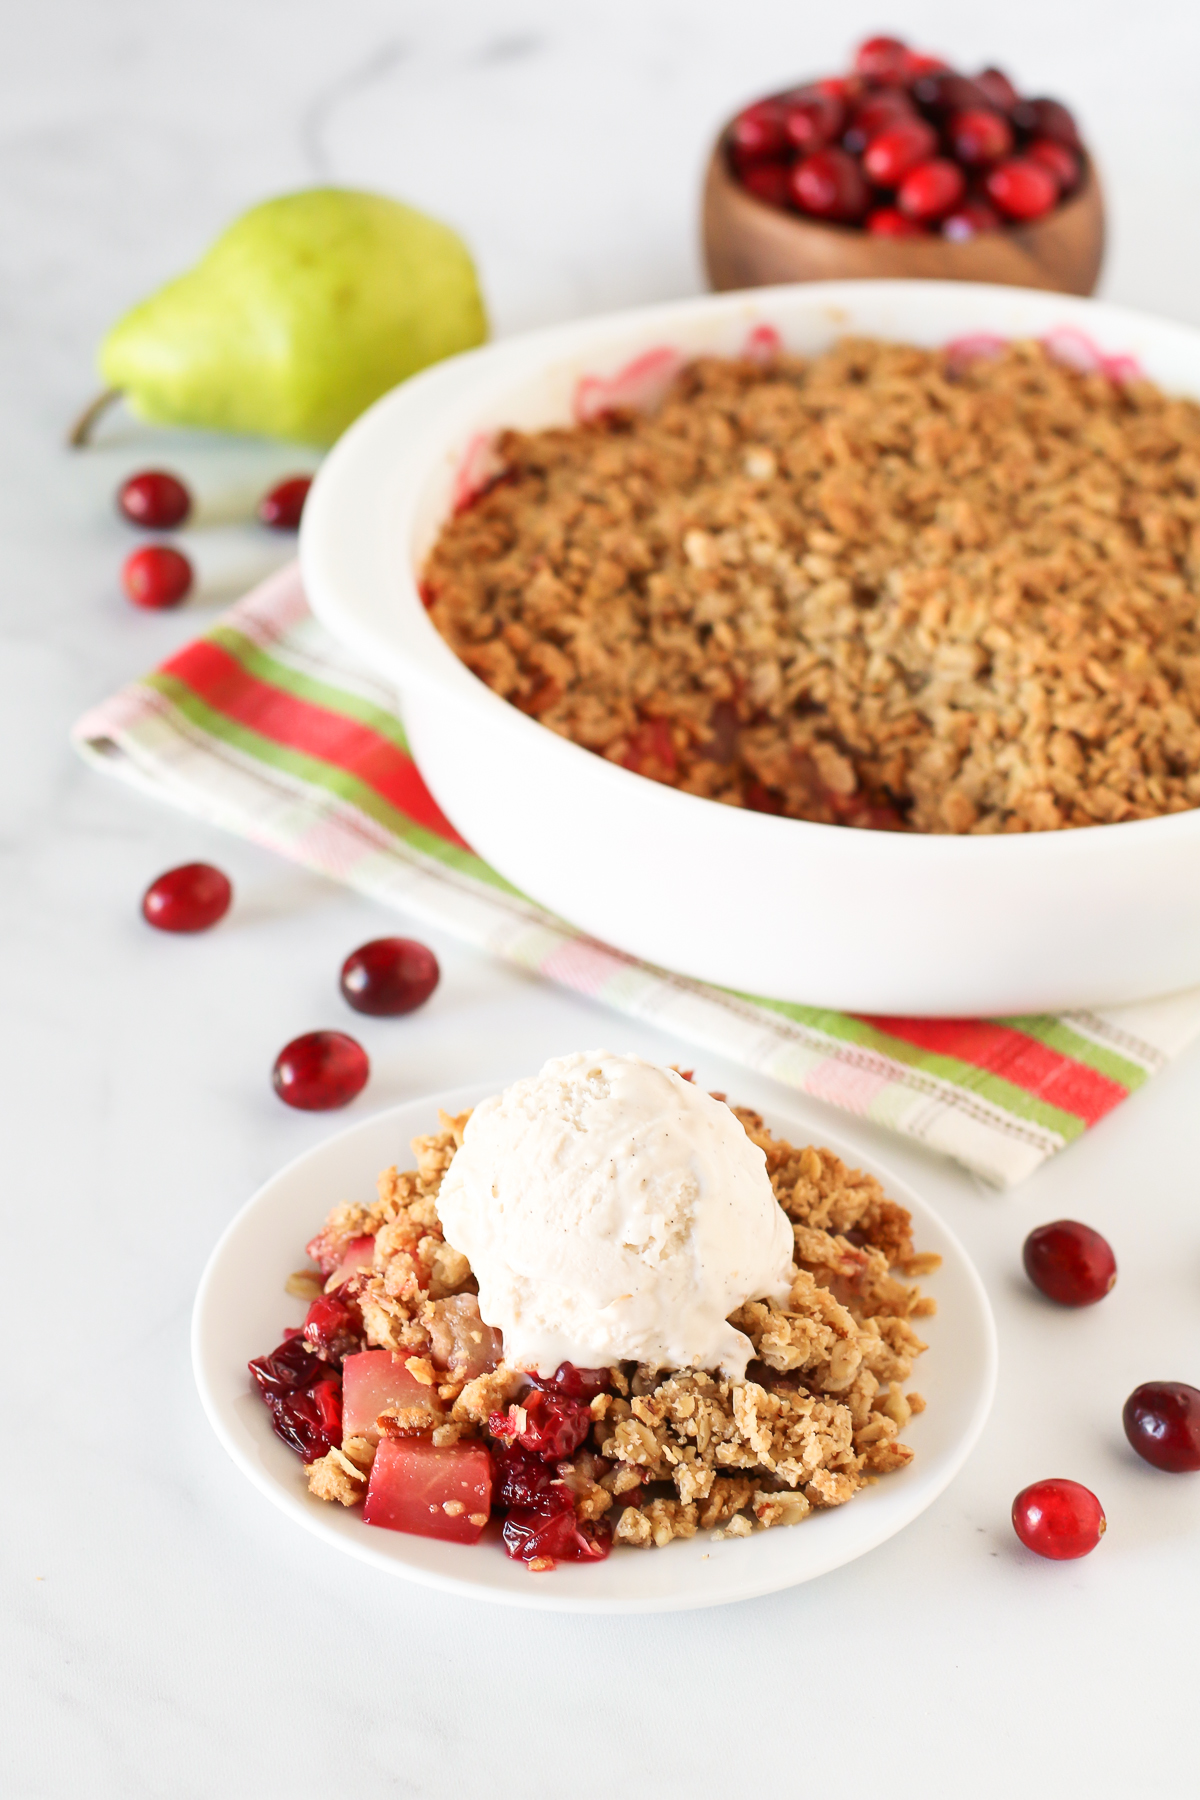 Gluten Free Vegan Cranberry Pear Crisp. Tender pears, tart cranberries and a golden oat-pecan crumb topping. A scrumptious holiday dessert!